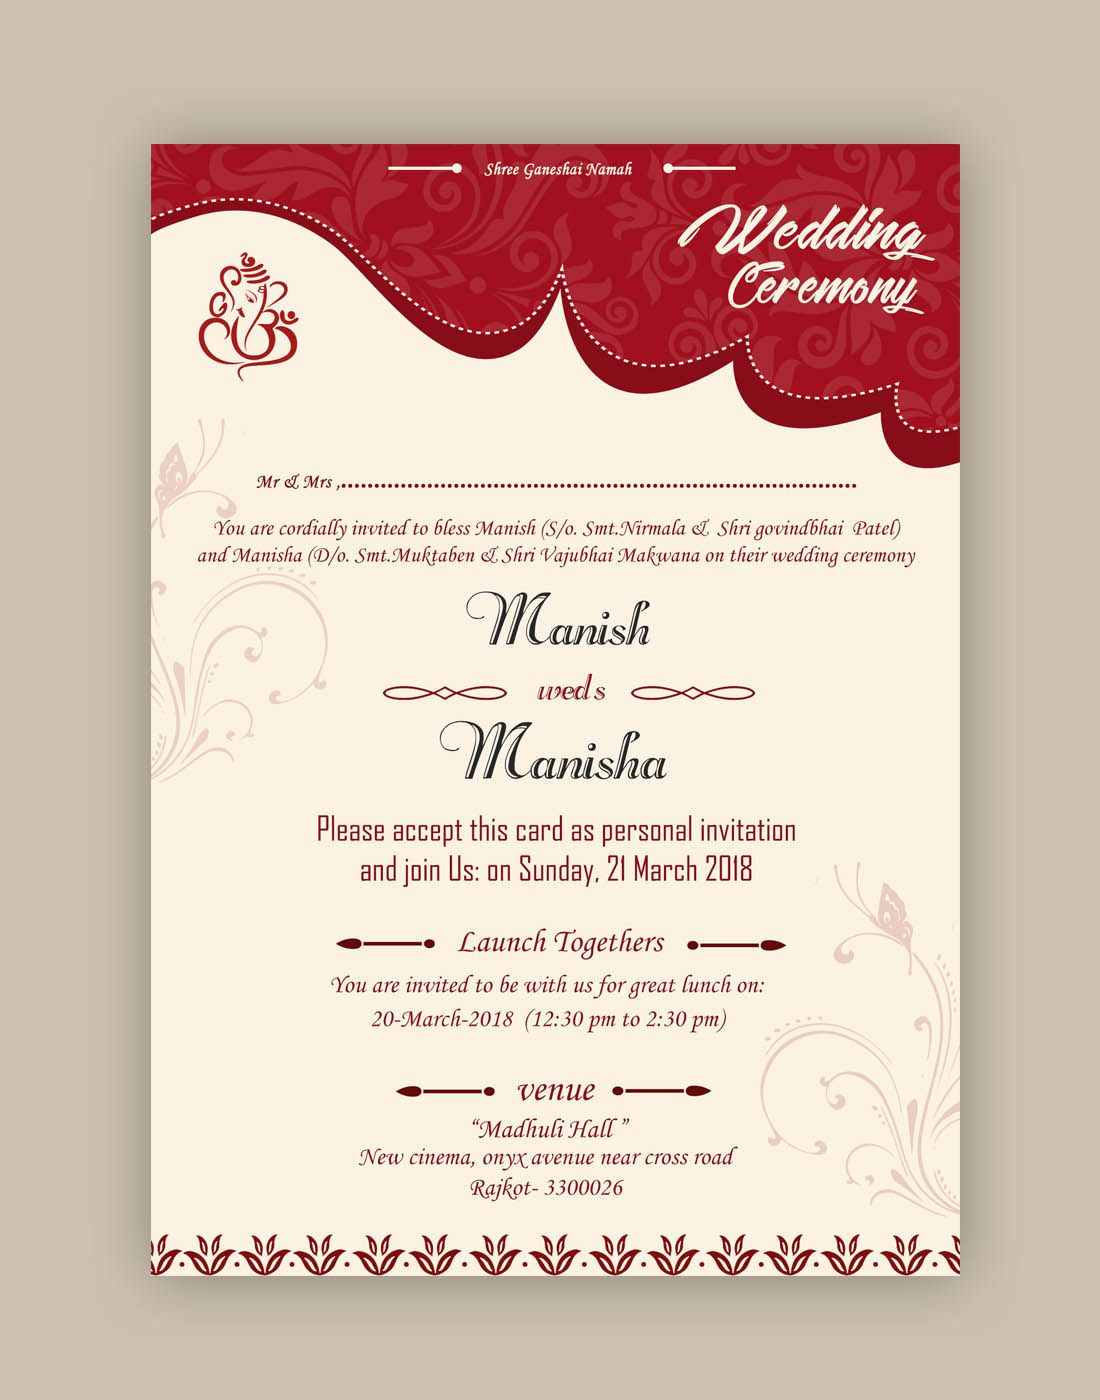 Free Wedding Card Psd Templates Marriage Invitation Card Free Wedding Cards Wedding Card Design Indian